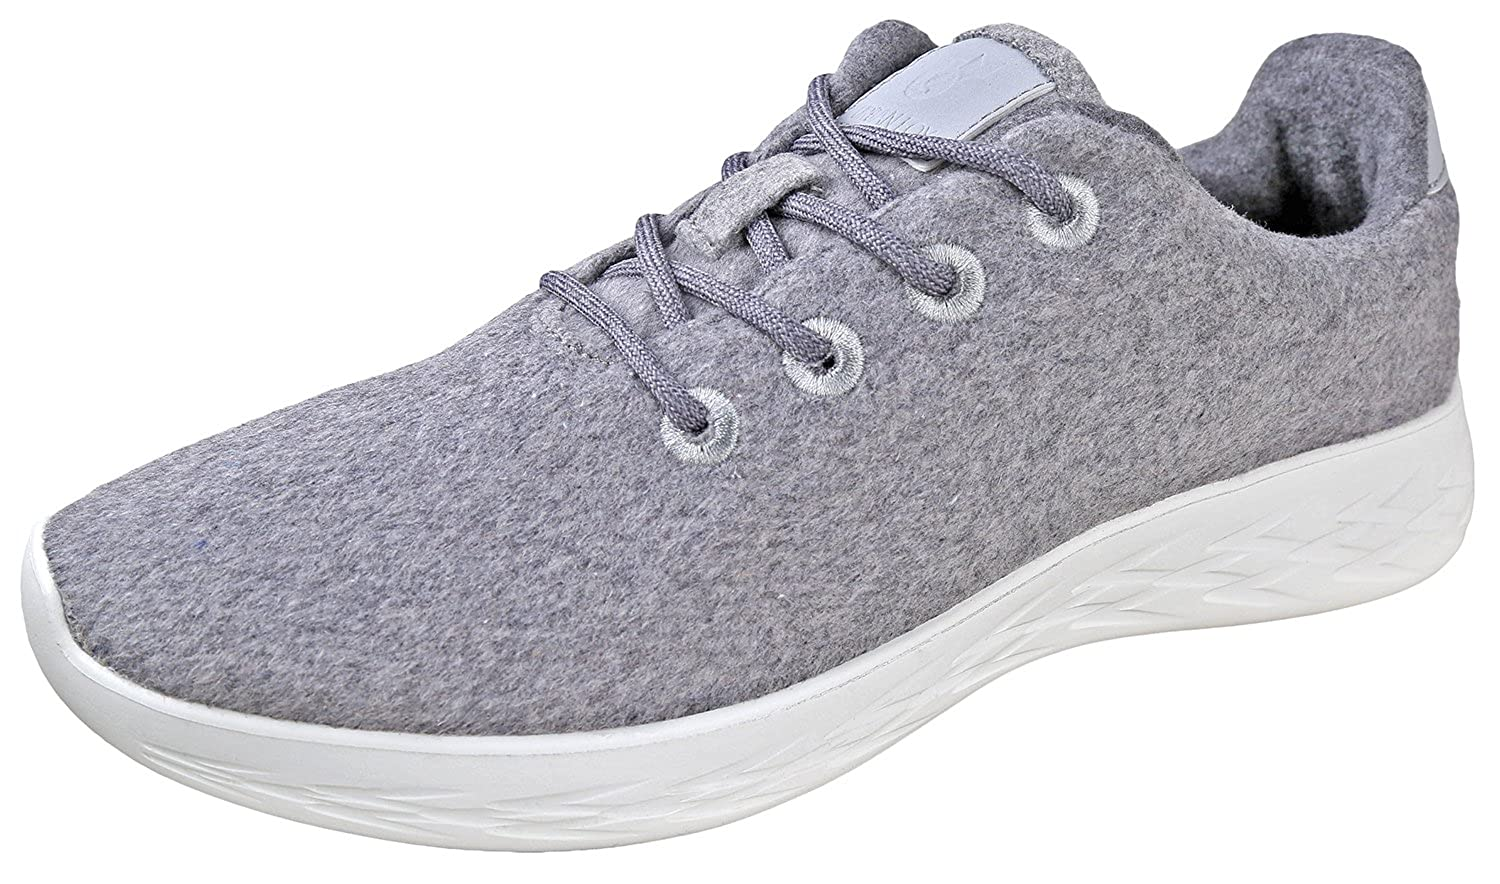 Urban Fox Mens Parker Wool Sneakers | Wool Shoes | Runners Running Shoes | Walking Shoe for Men… AHY-17050